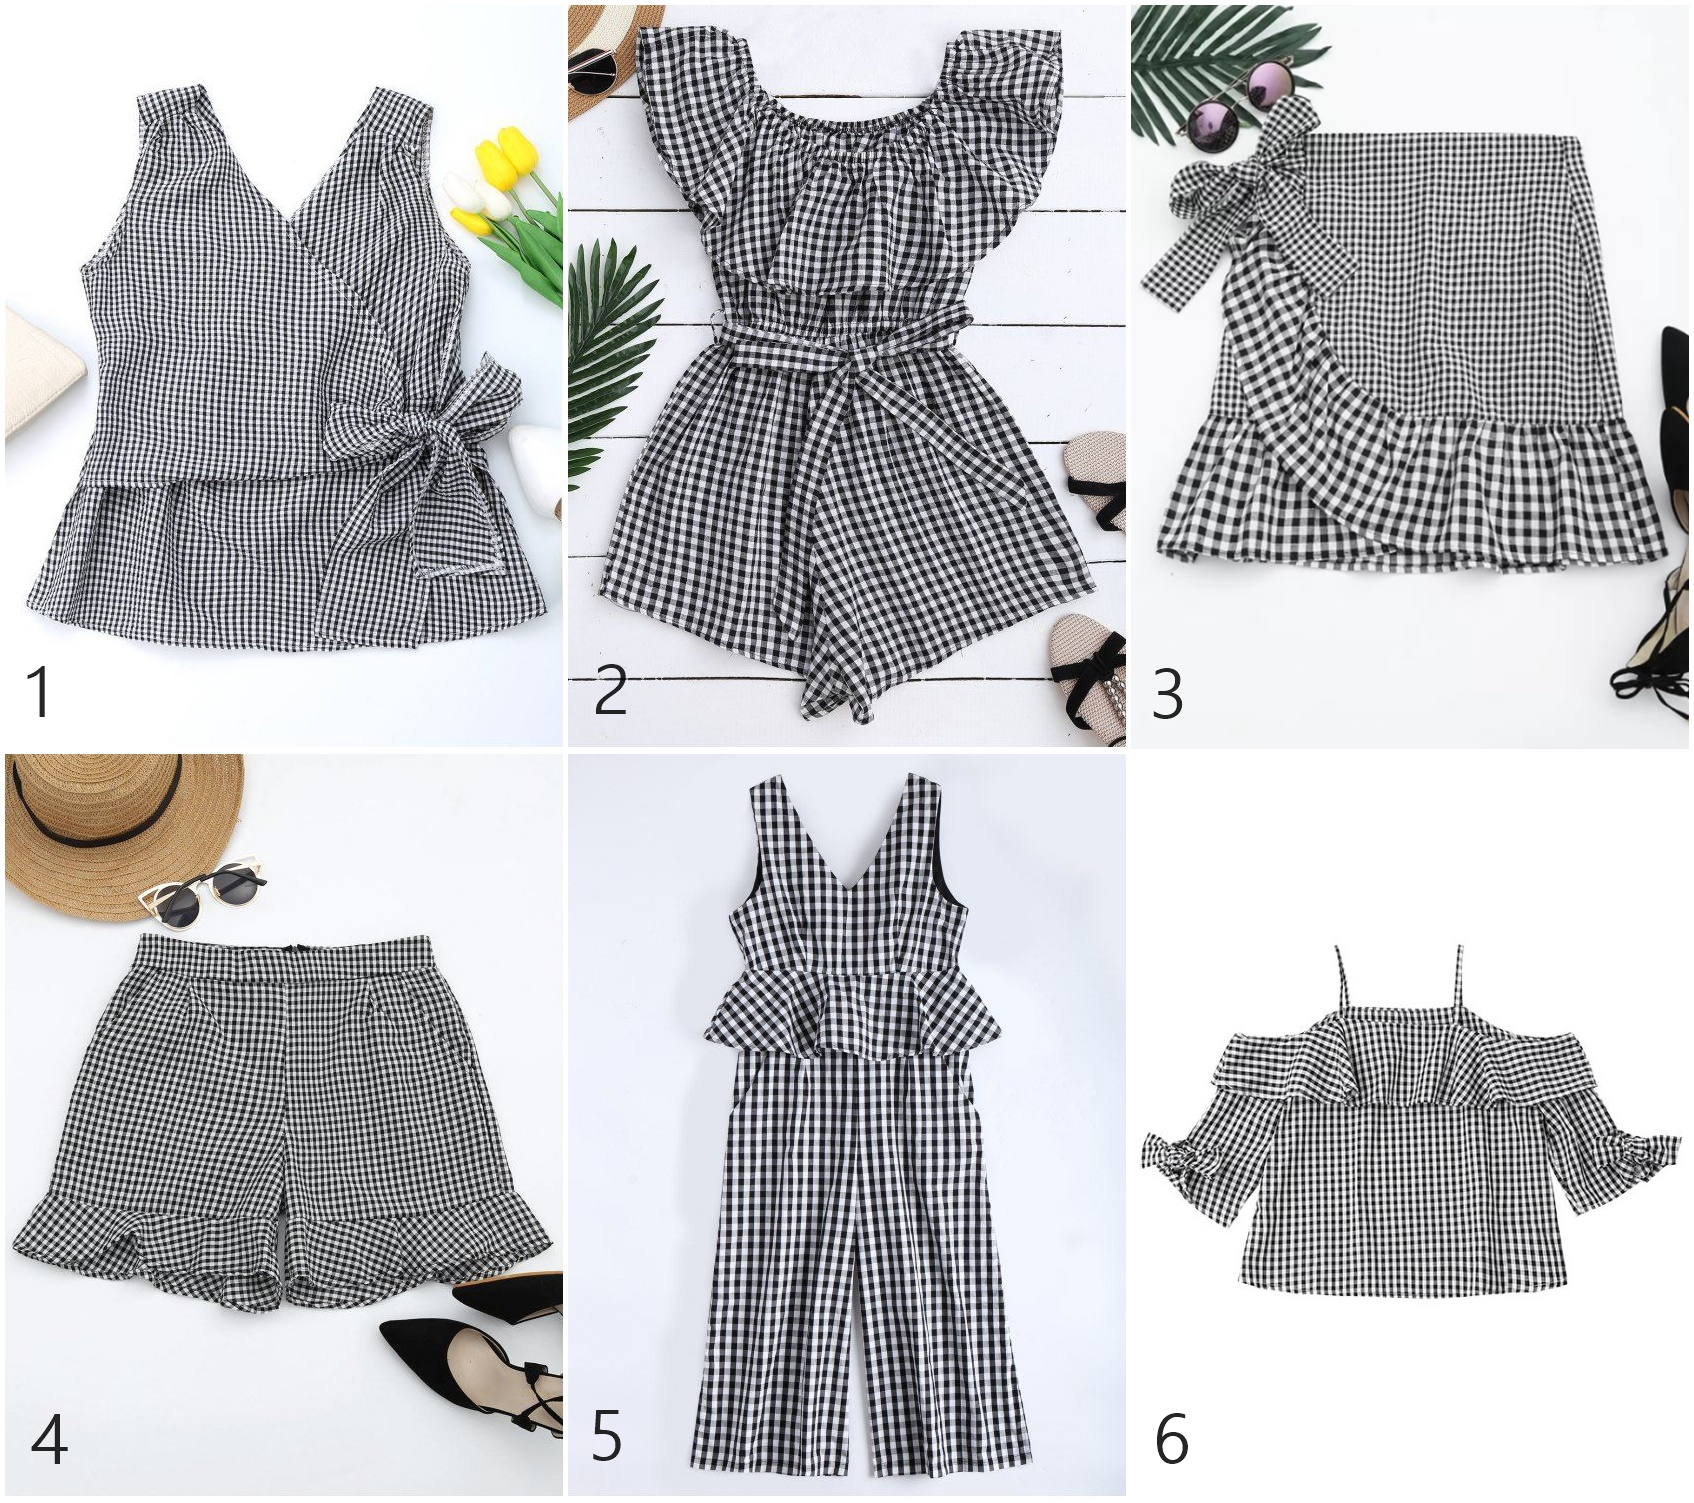 zaful-wishlist-cuadros-vichy